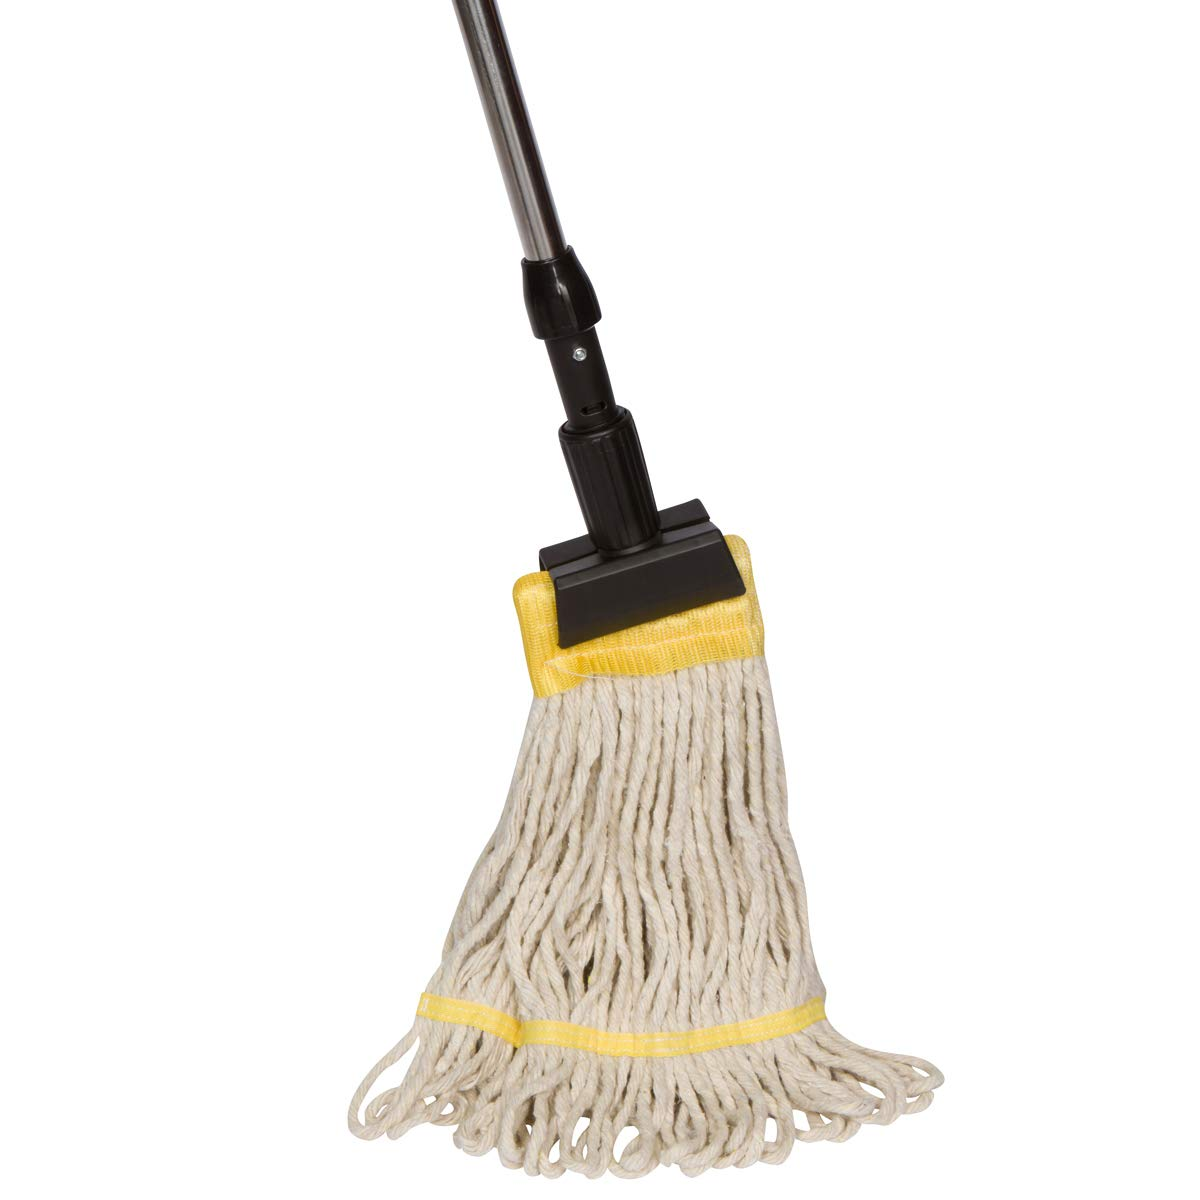 Tidy Tools Industrial Grade String Mop With Aluminum Handle and Jaw Clamp - 20.5 Oz Cotton Mop Head With Looped Ends by Tidy Tools